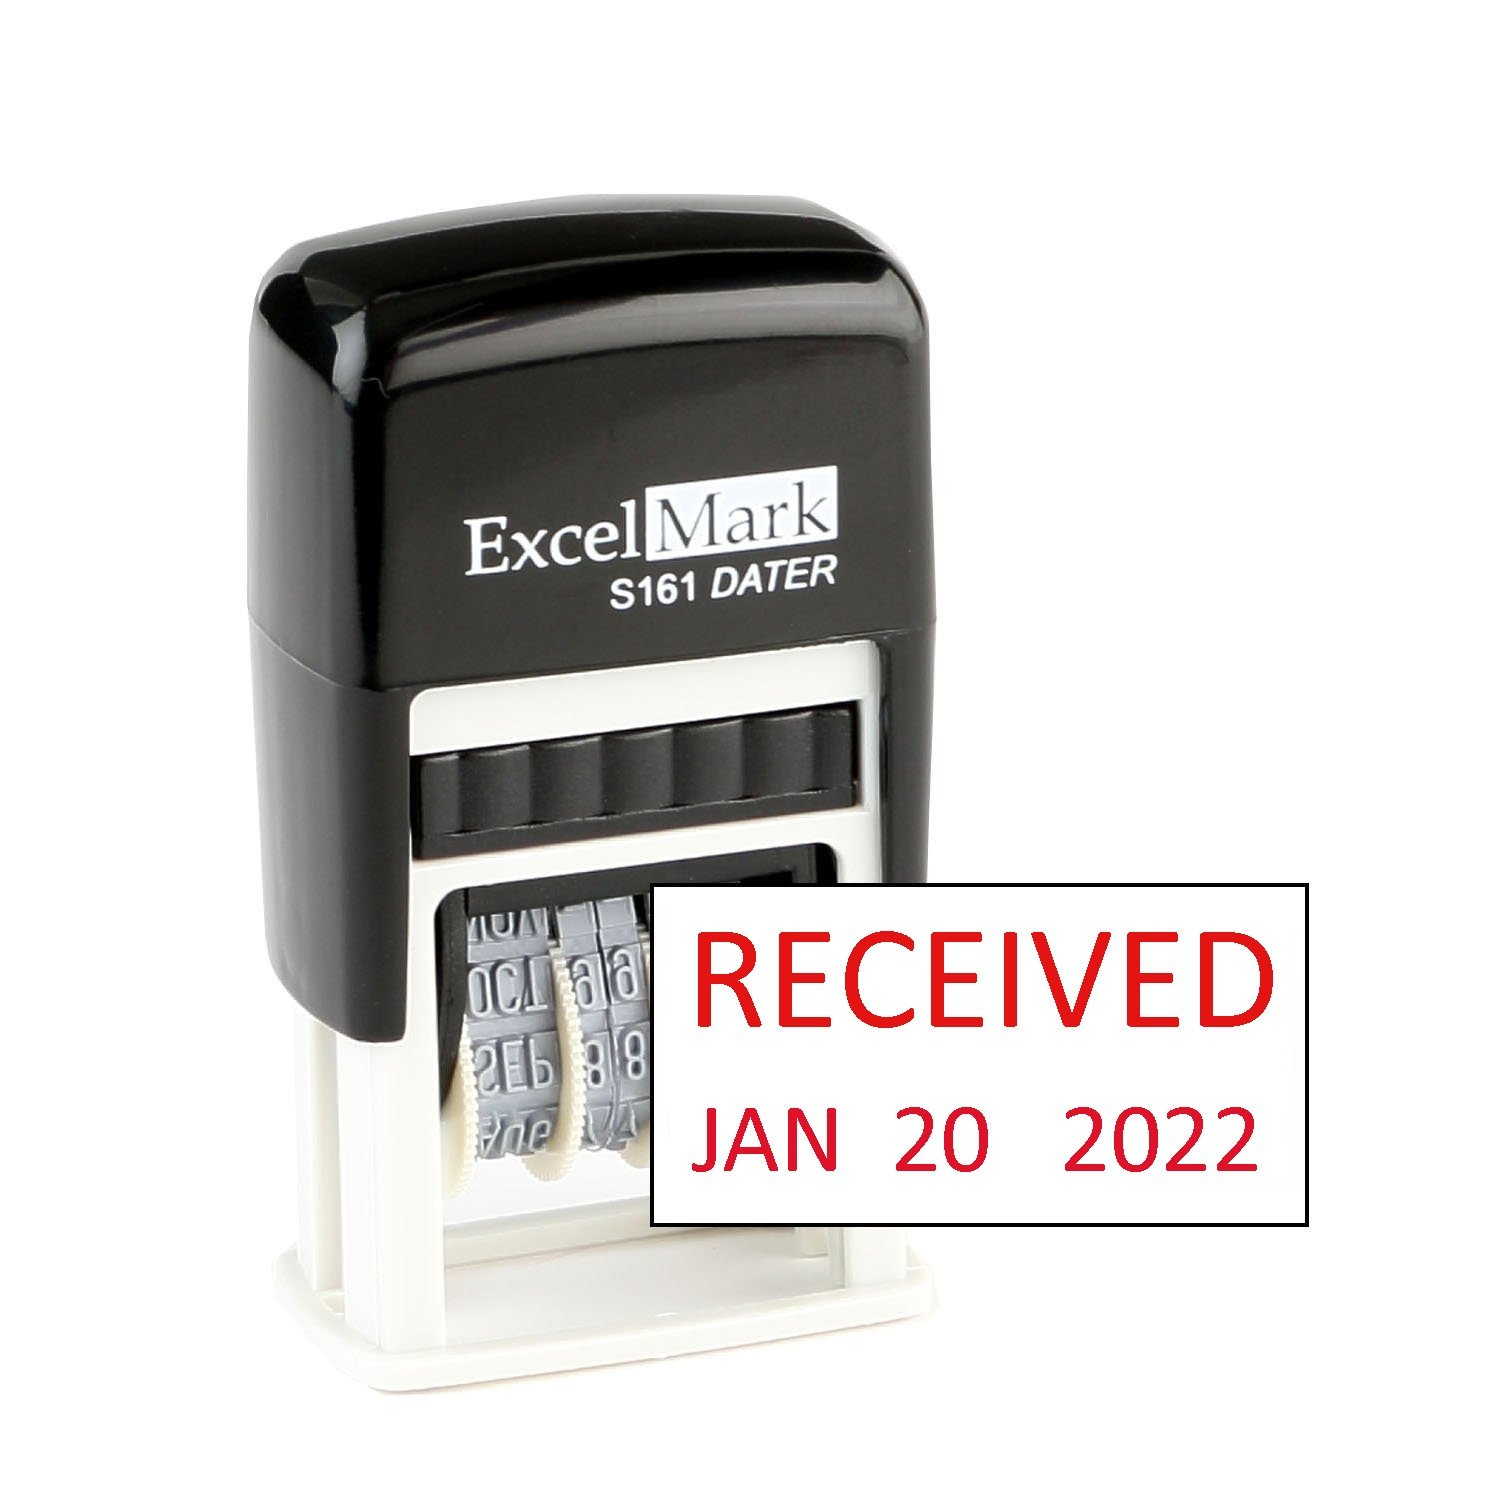 Received ExcelMark Self Inking Rubber Compact